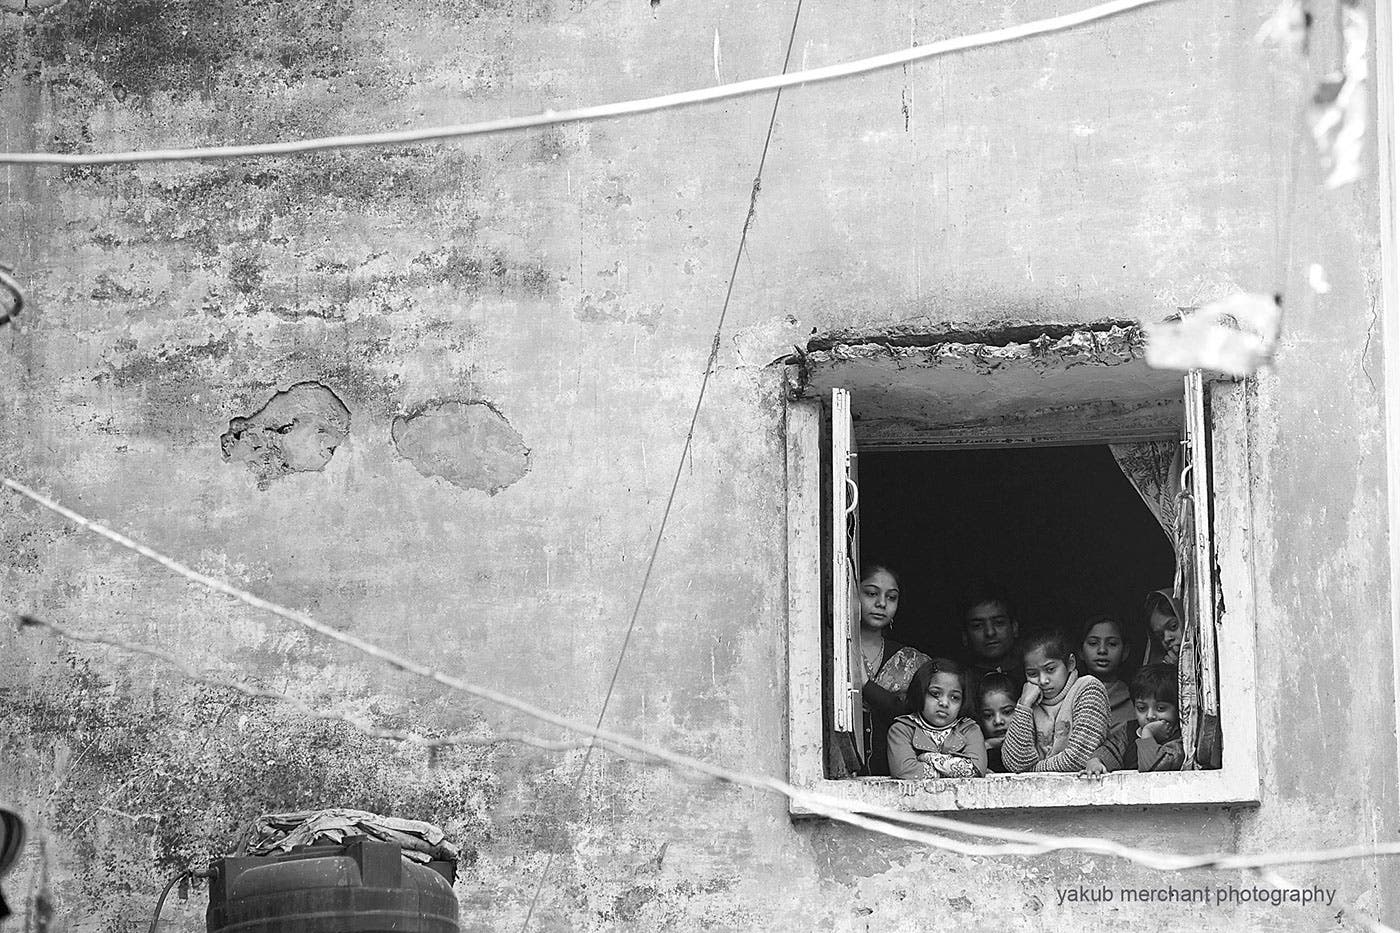 Yakub Merchant's Street Photography Emphasizes People Through Their Windows